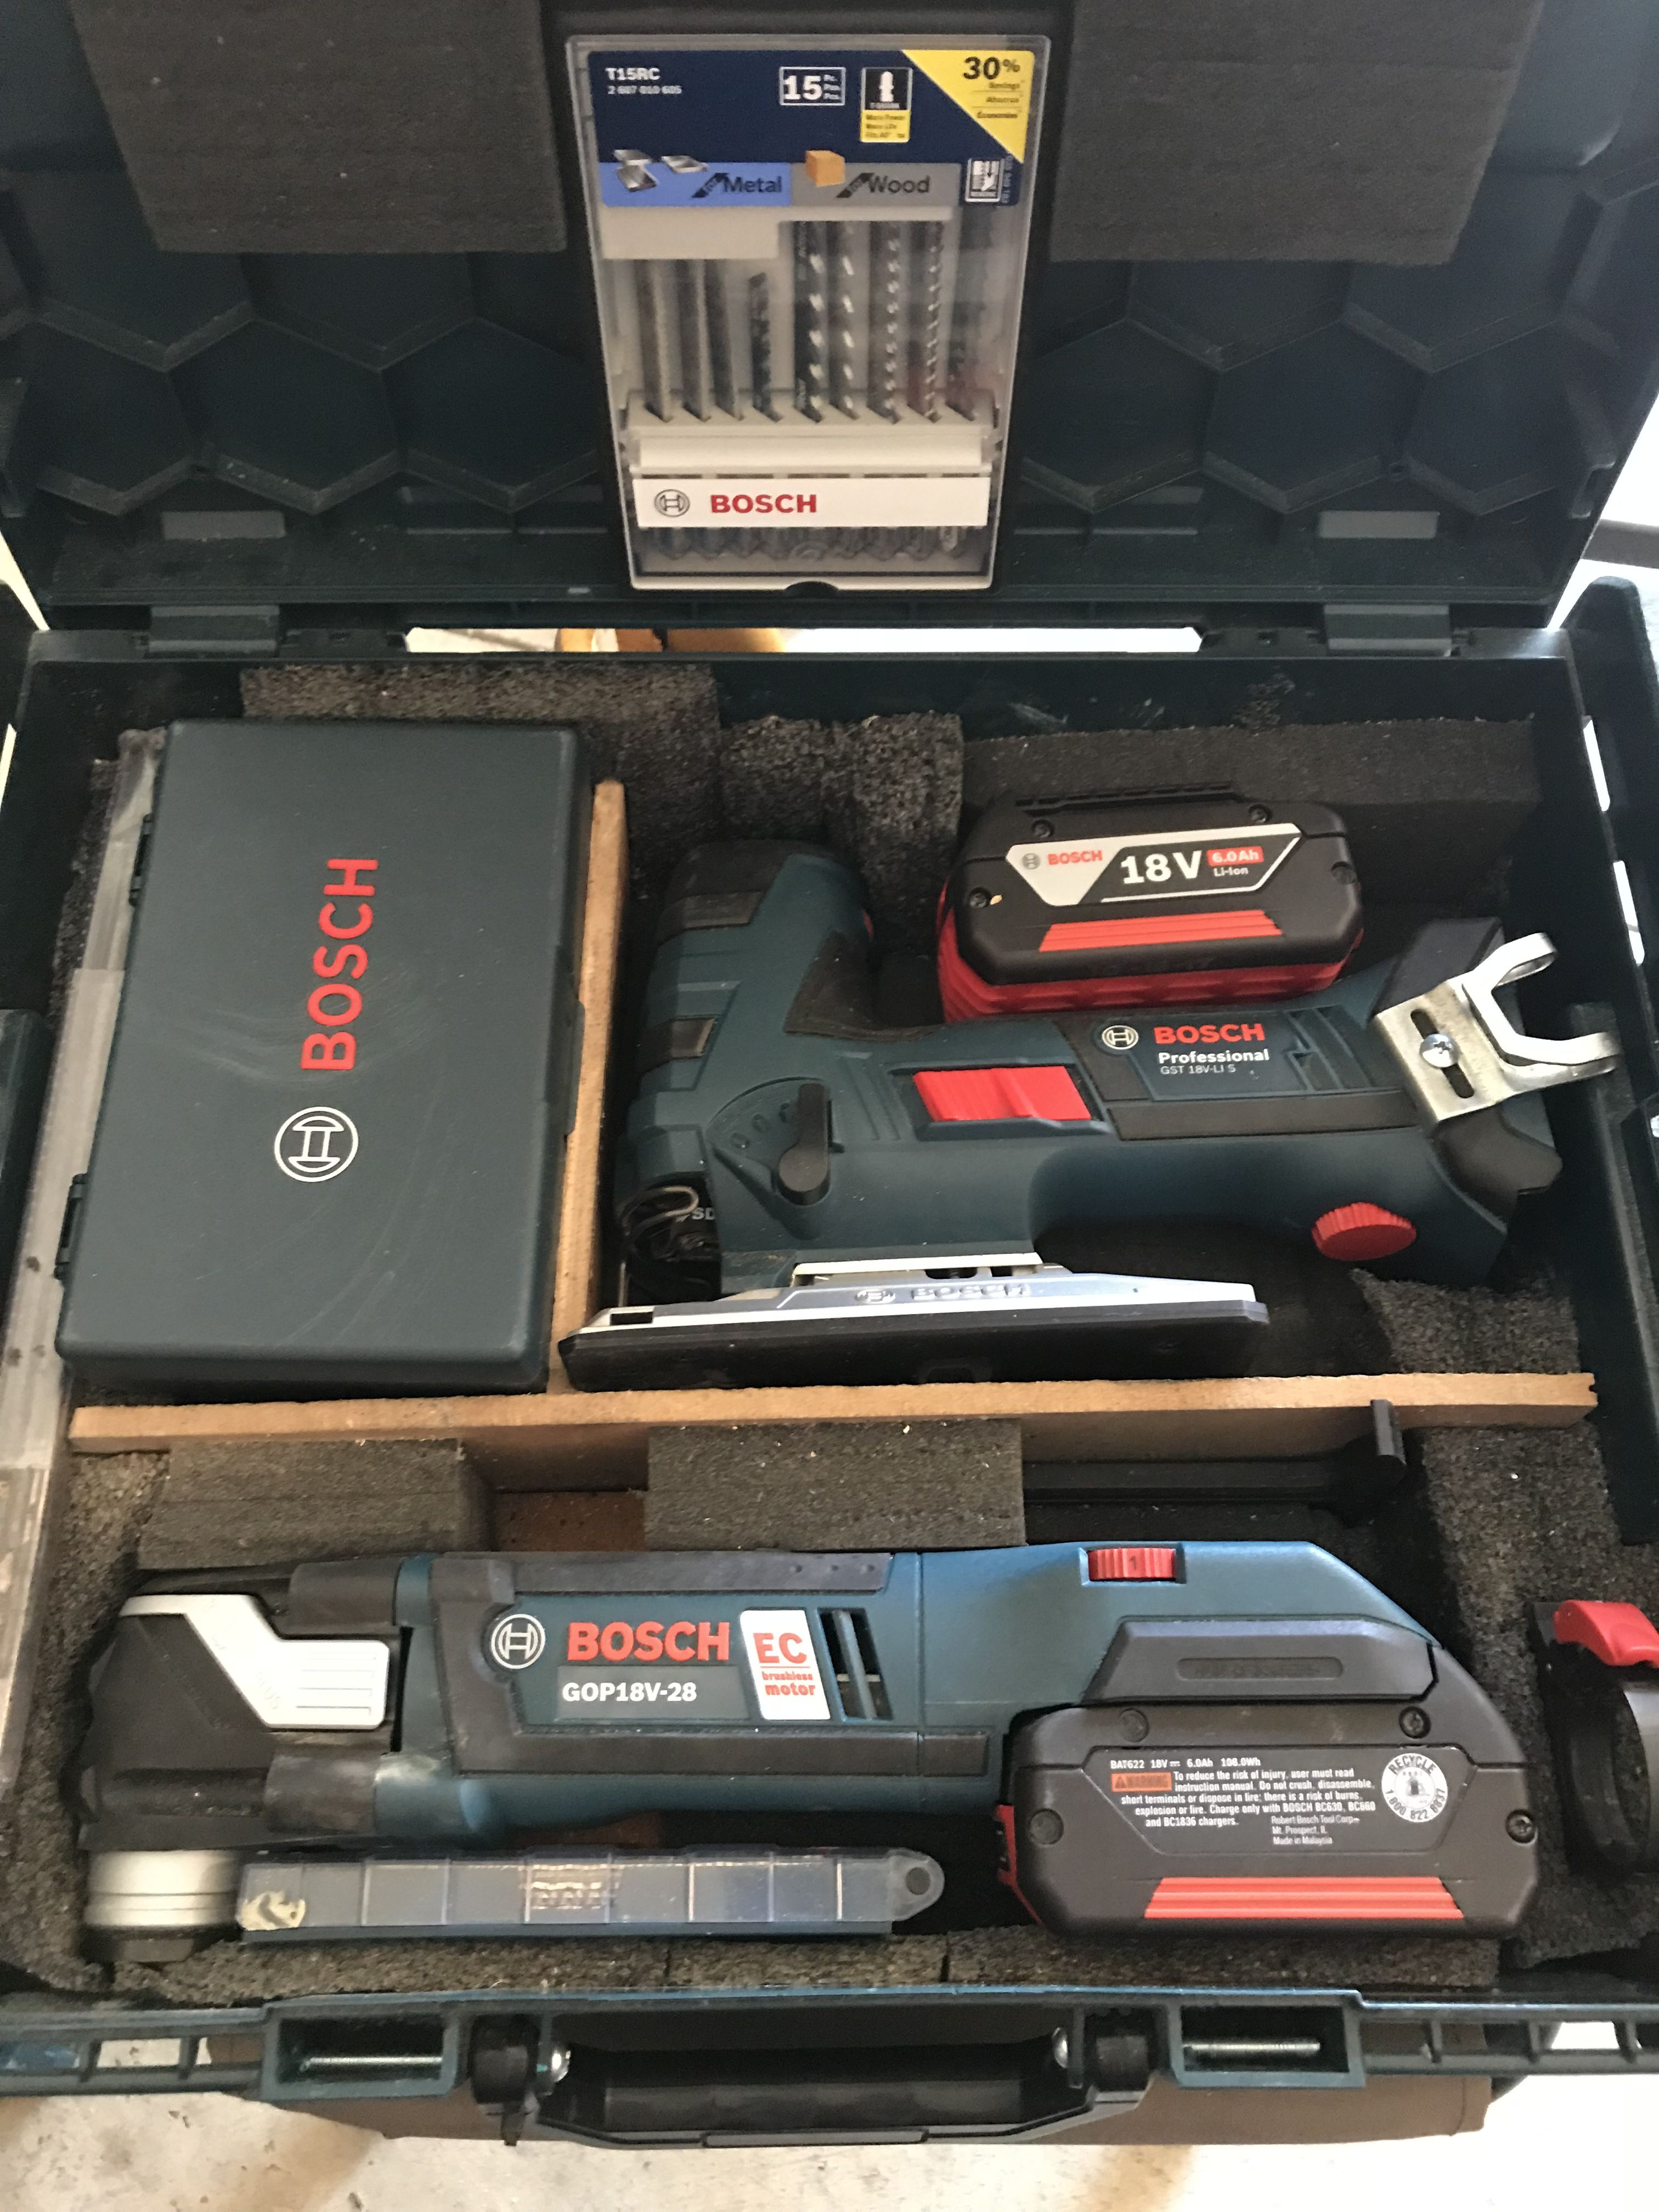 Bosch l boxx custom insert for18v multi tool blades pulse new 18v bosch l boxx custom insert for18v multi tool blades pulse new 18v barrel grip jigsaw blades and 60amp batterys for each tool greentooth Gallery